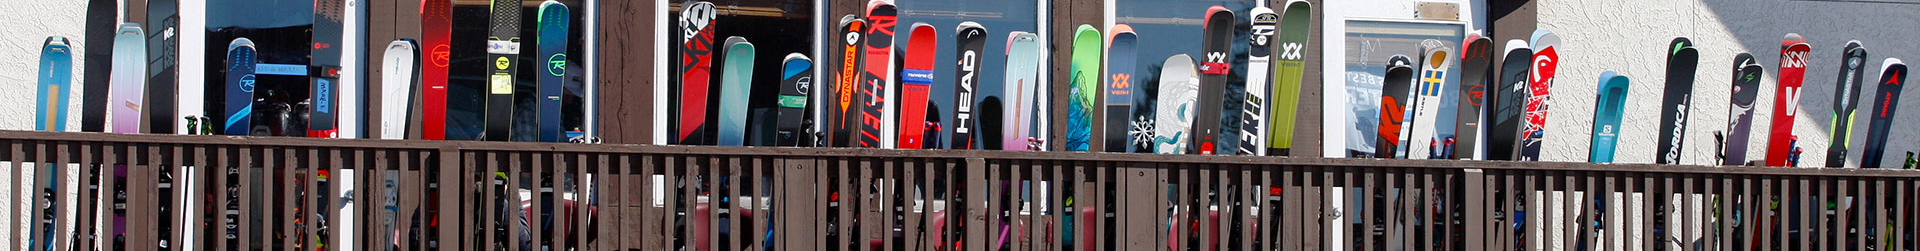 skis leaning on railing